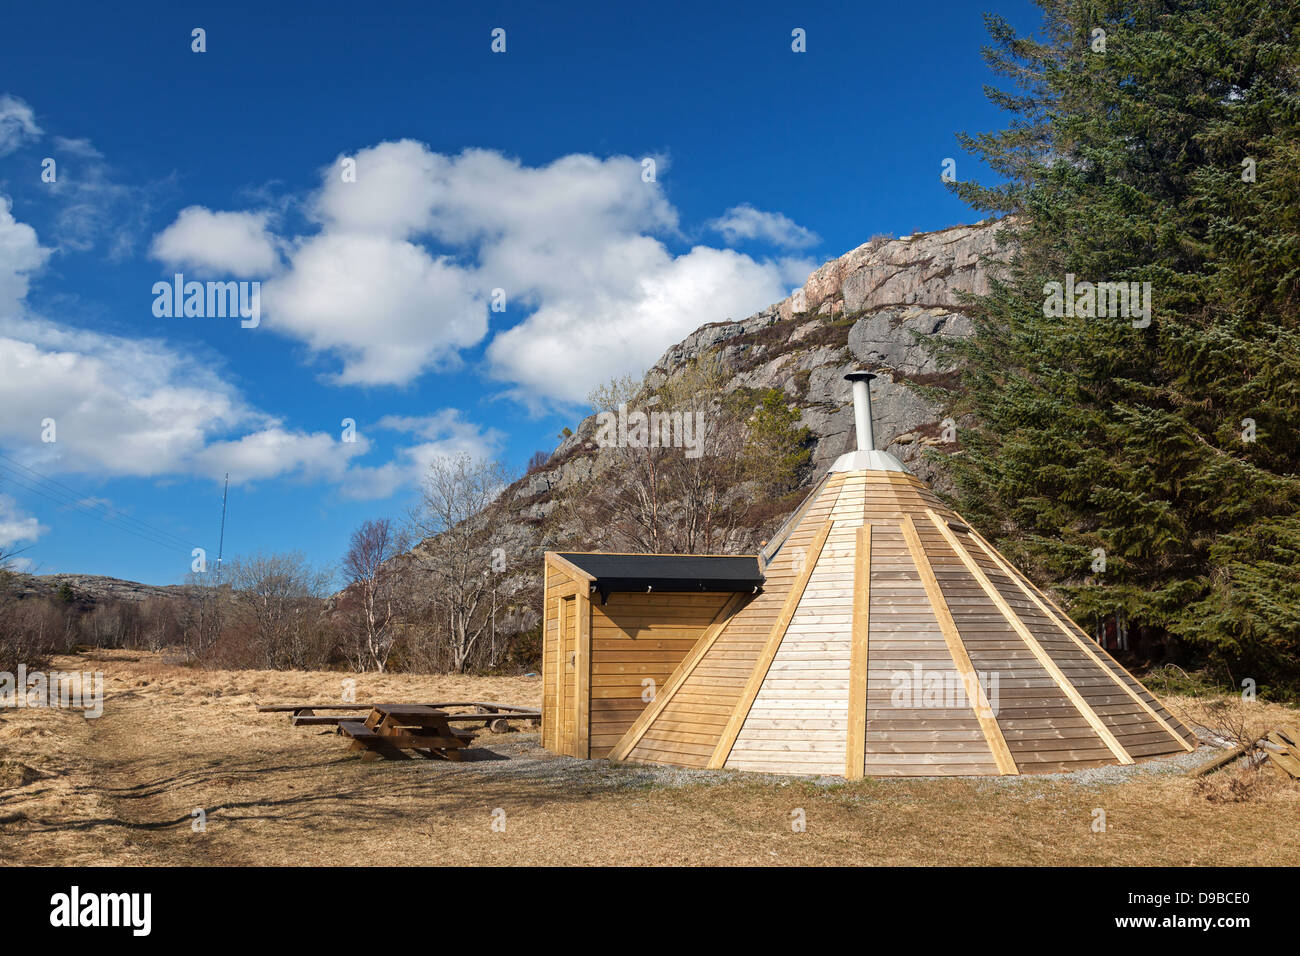 Small Wooden Free For Use Camping House In Norwegian Park Stock